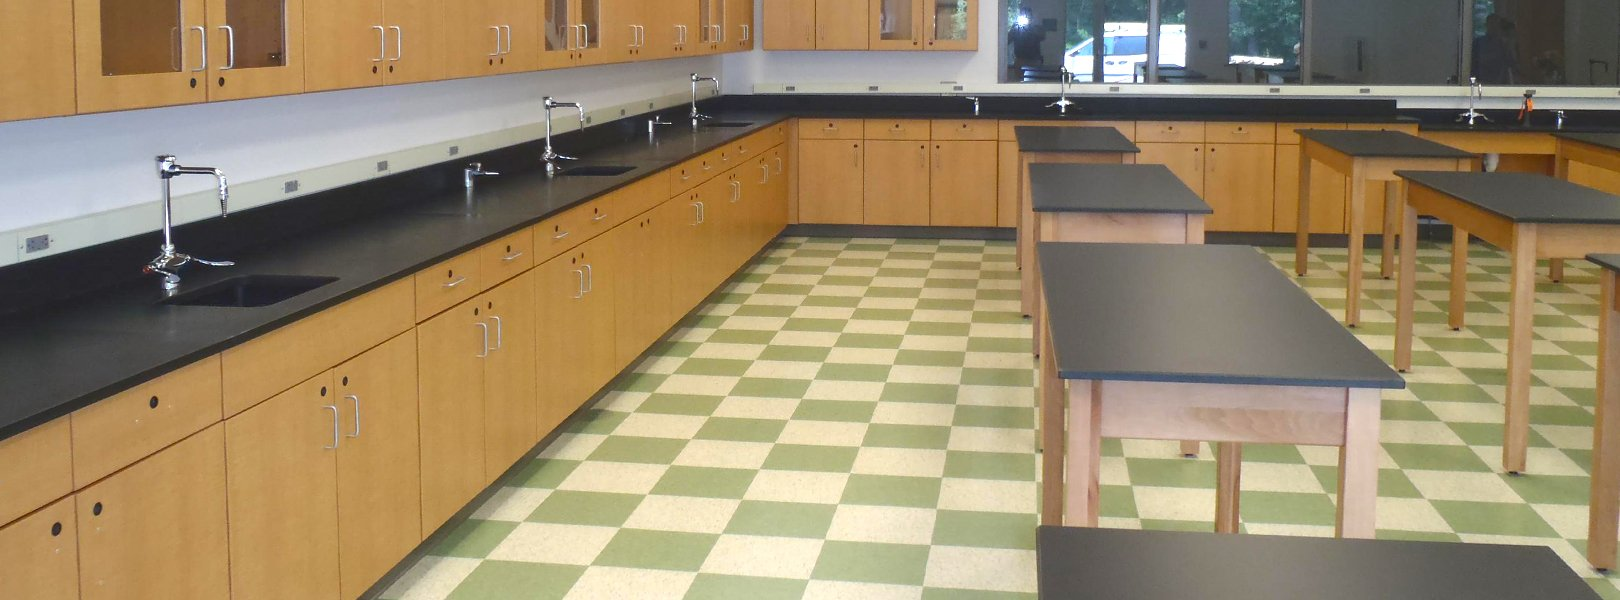 CFC Educational Science Lab includes Science Tables, Science Cabinets and Chemical Resistant Counter Tops